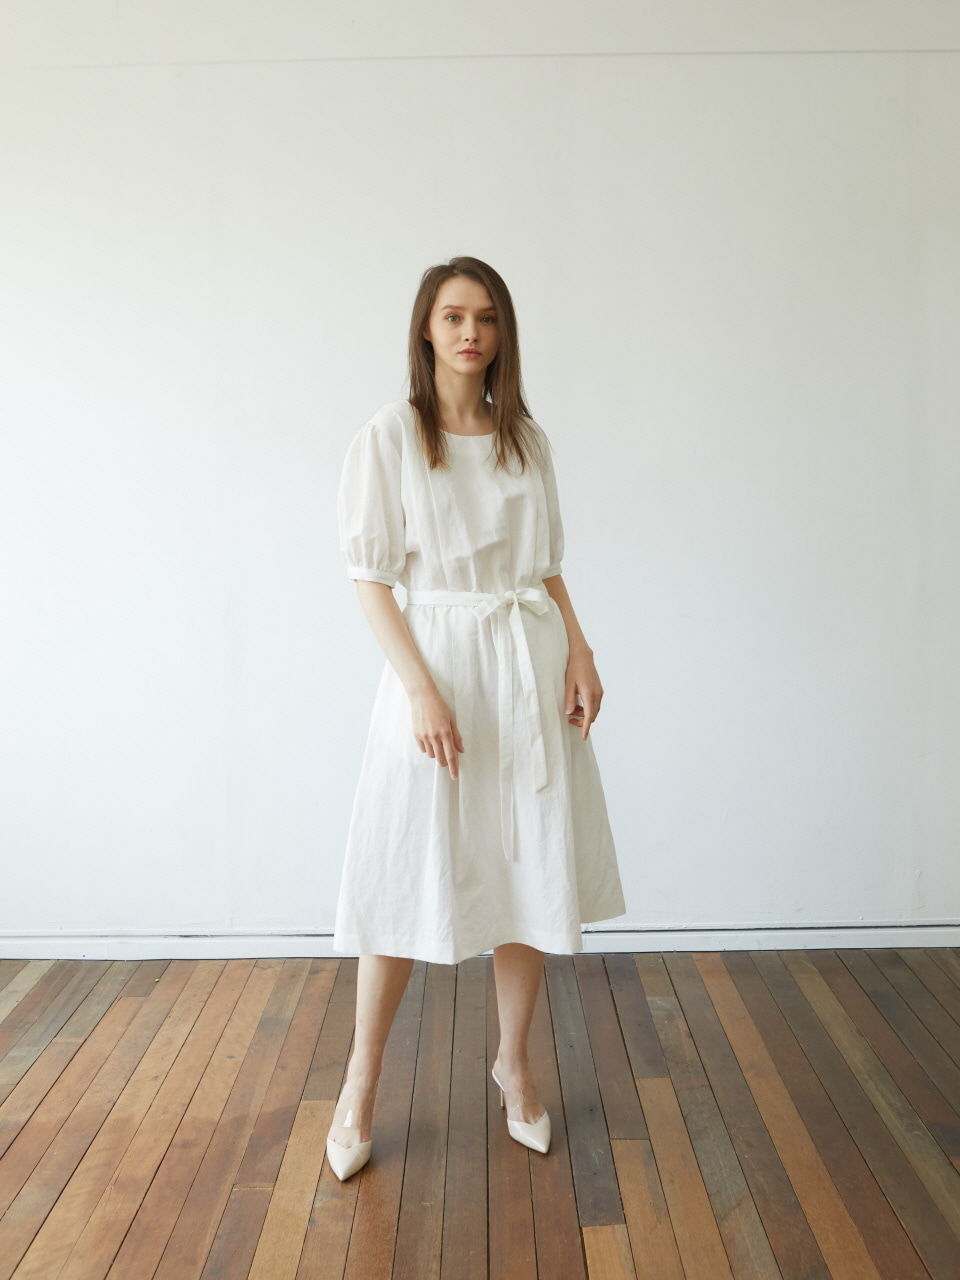 [Coett] White Linen Dress